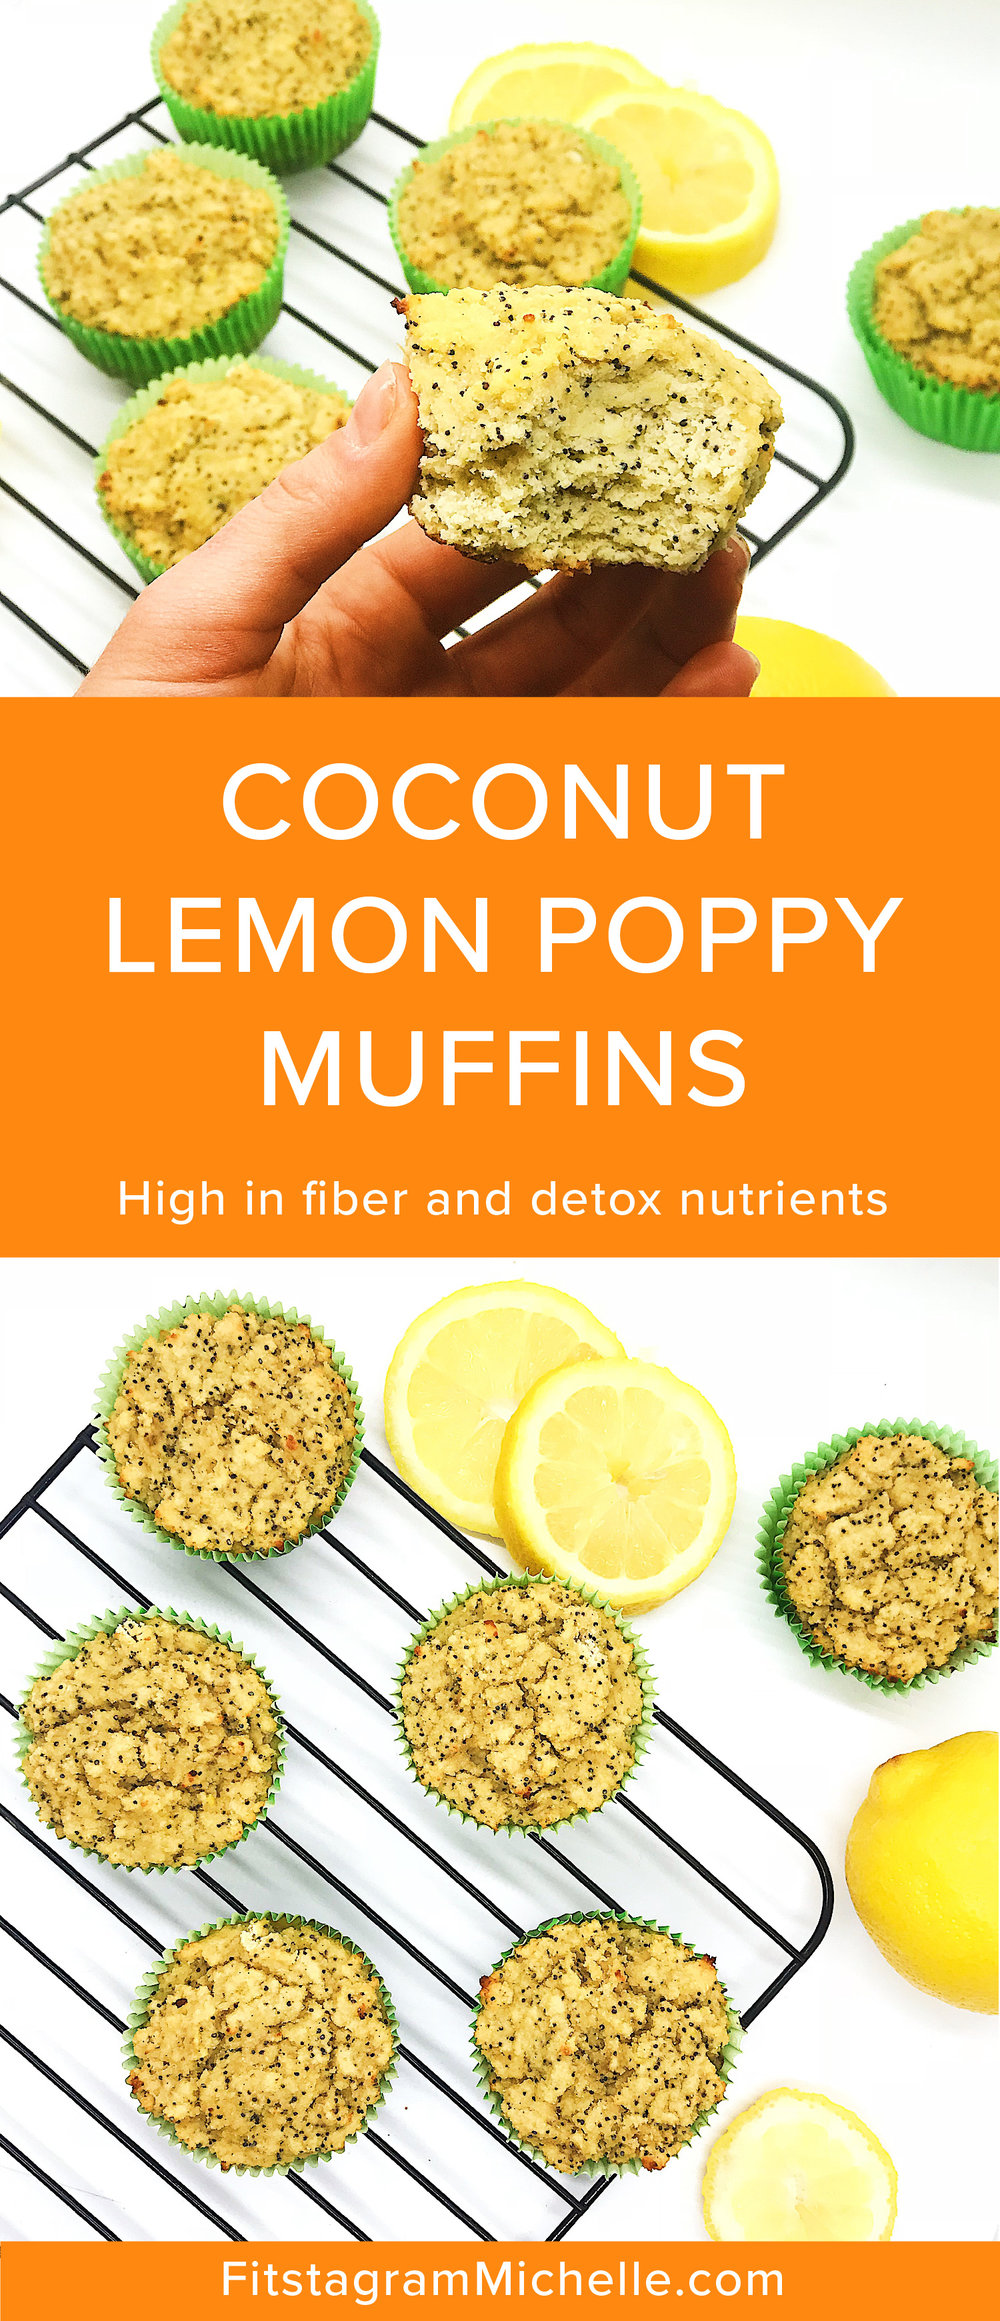 Coconut Lemon Poppy Muffins. Packed with protein, high in fiber and perfect for a detox. Oil-free, sugar-free, dairy-free, butter-free.